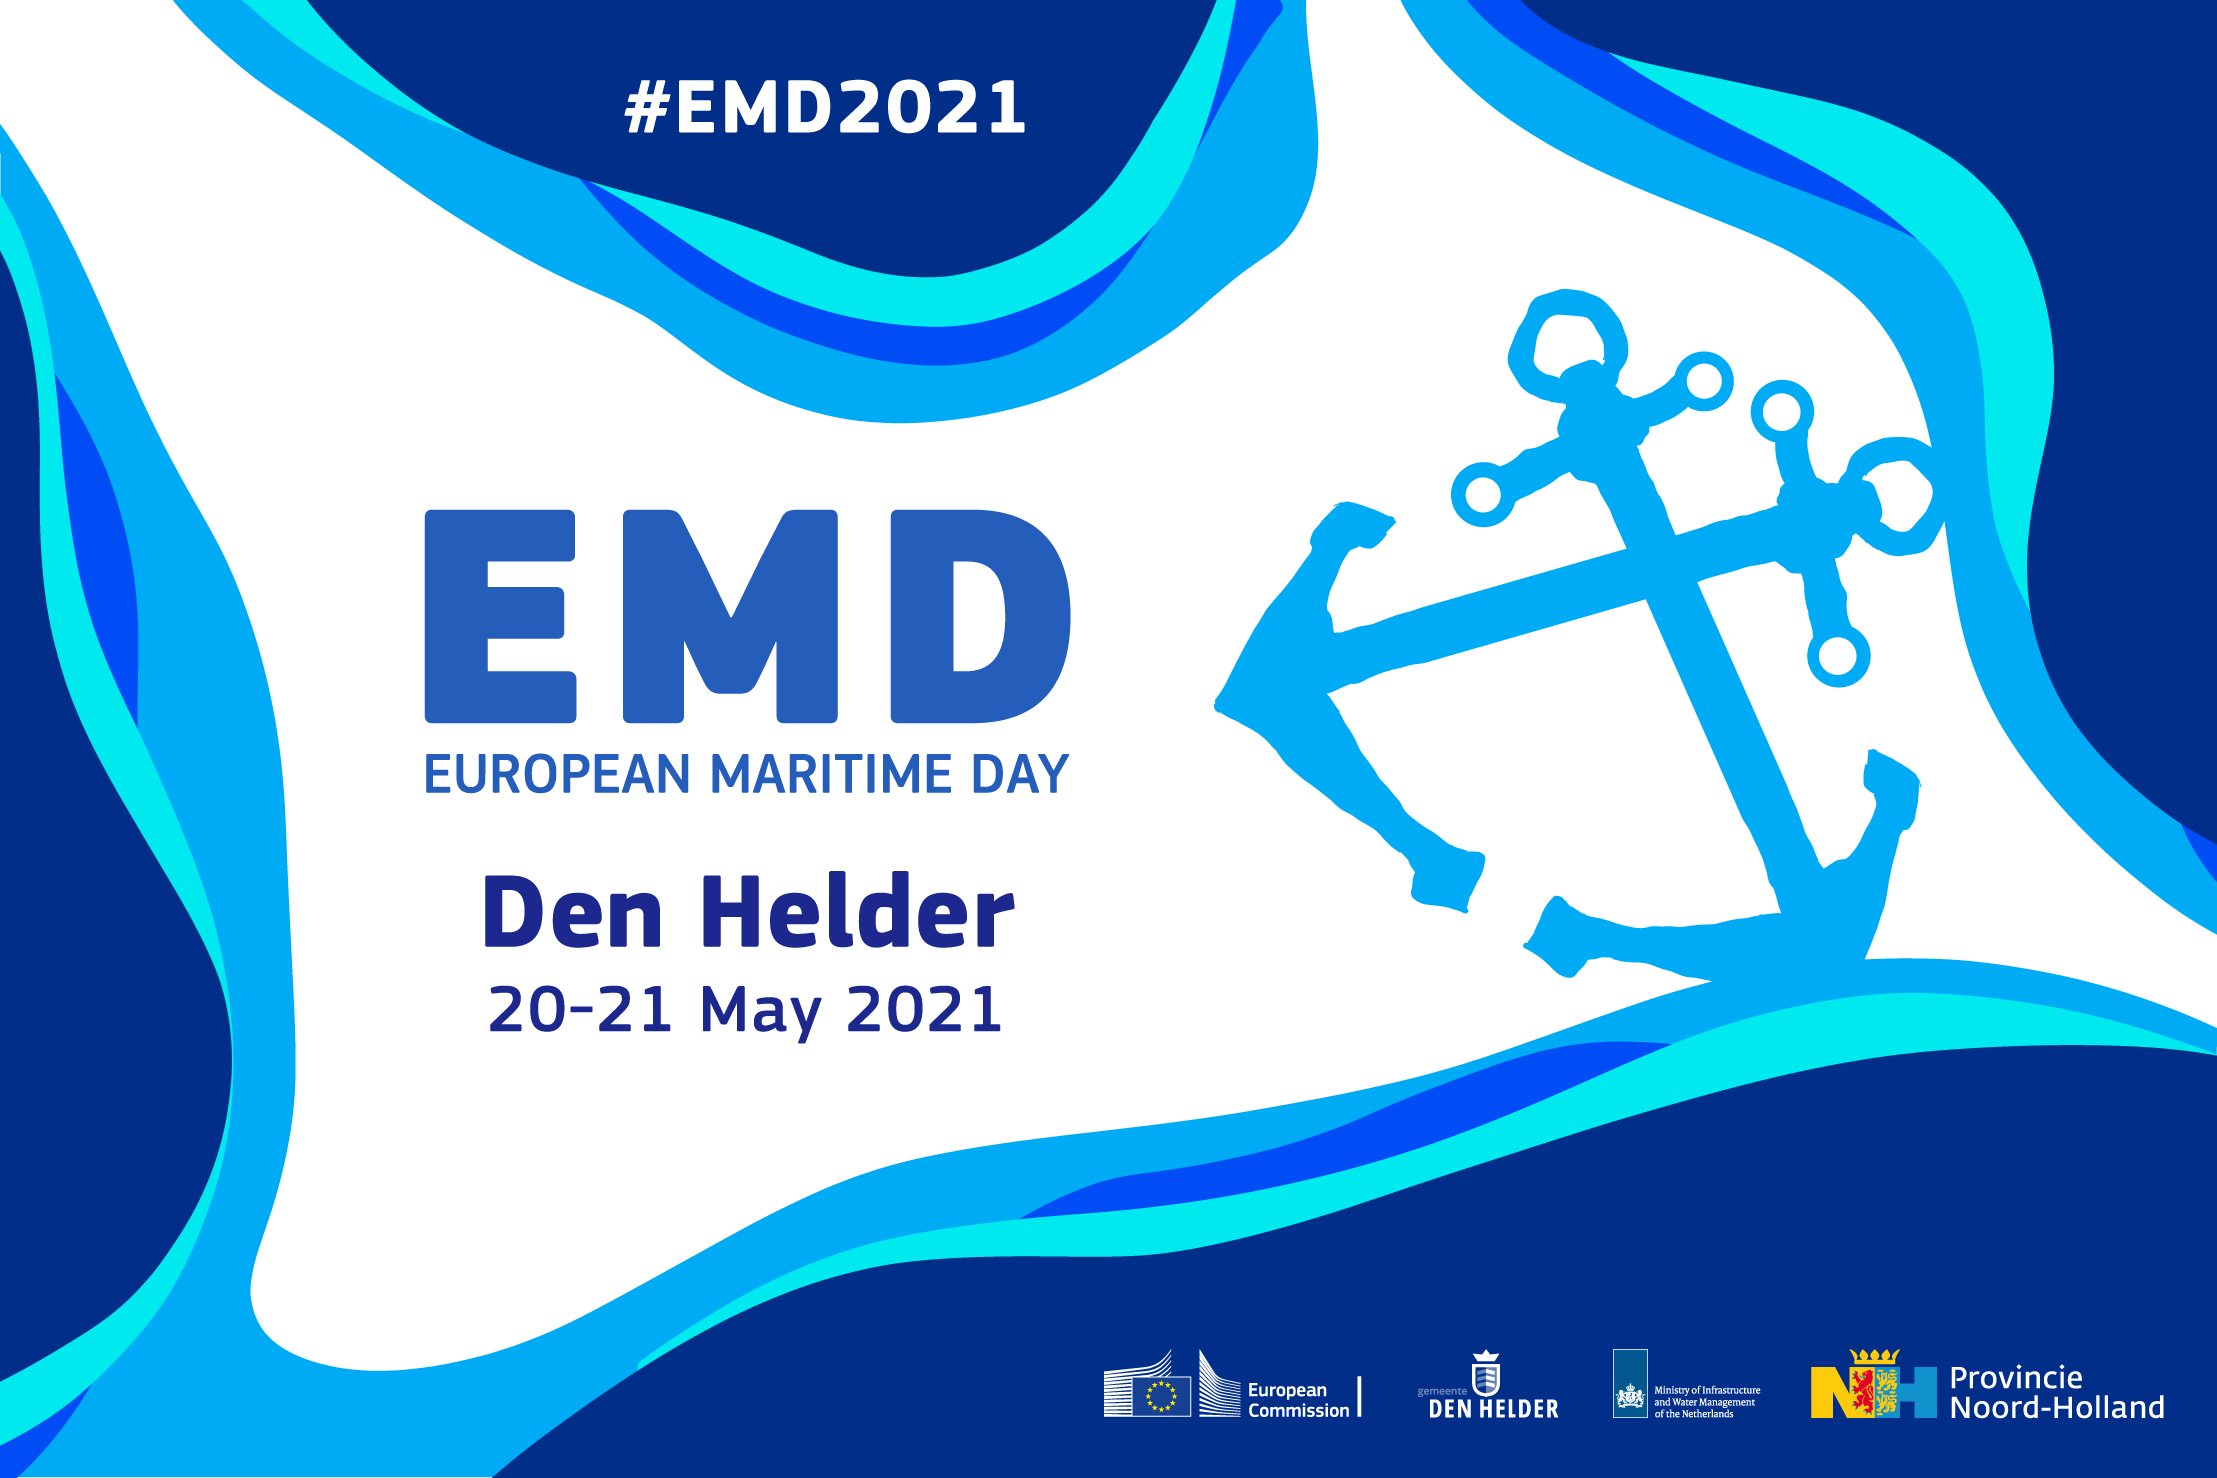 EMD2021 kicks off from Den Helder on 20-21 May!